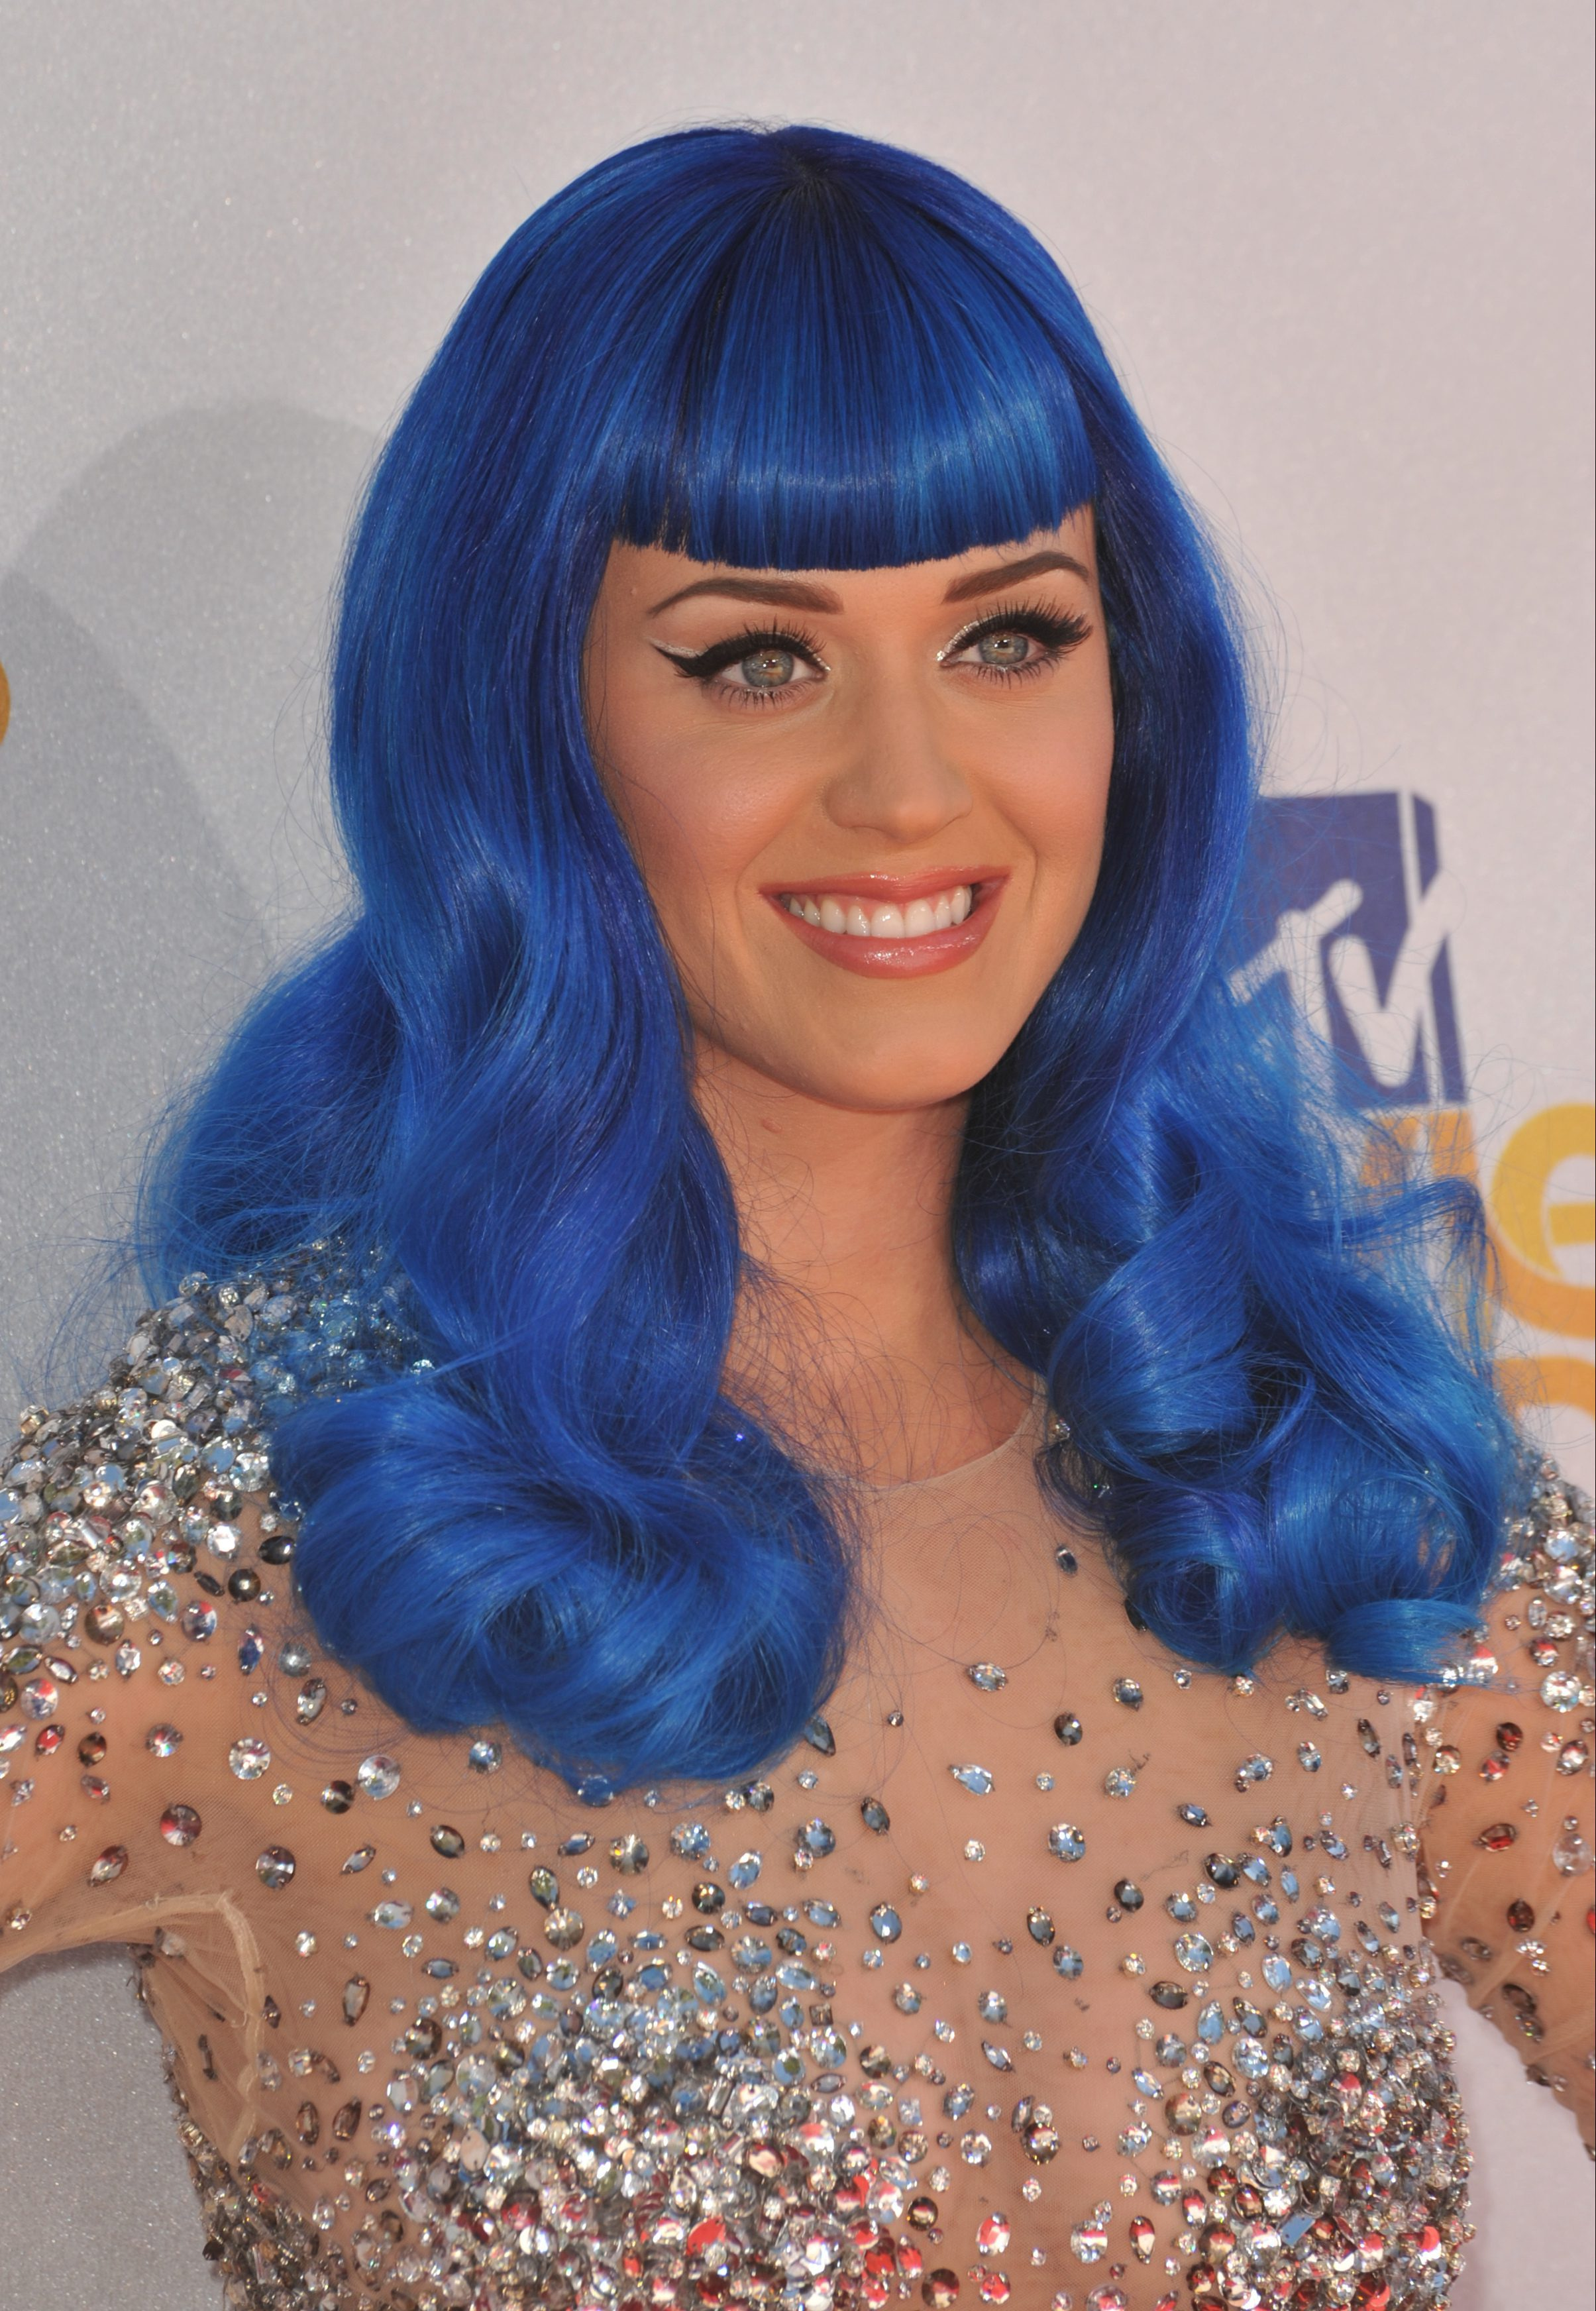 Katy Perry's Avatar Inspired Look